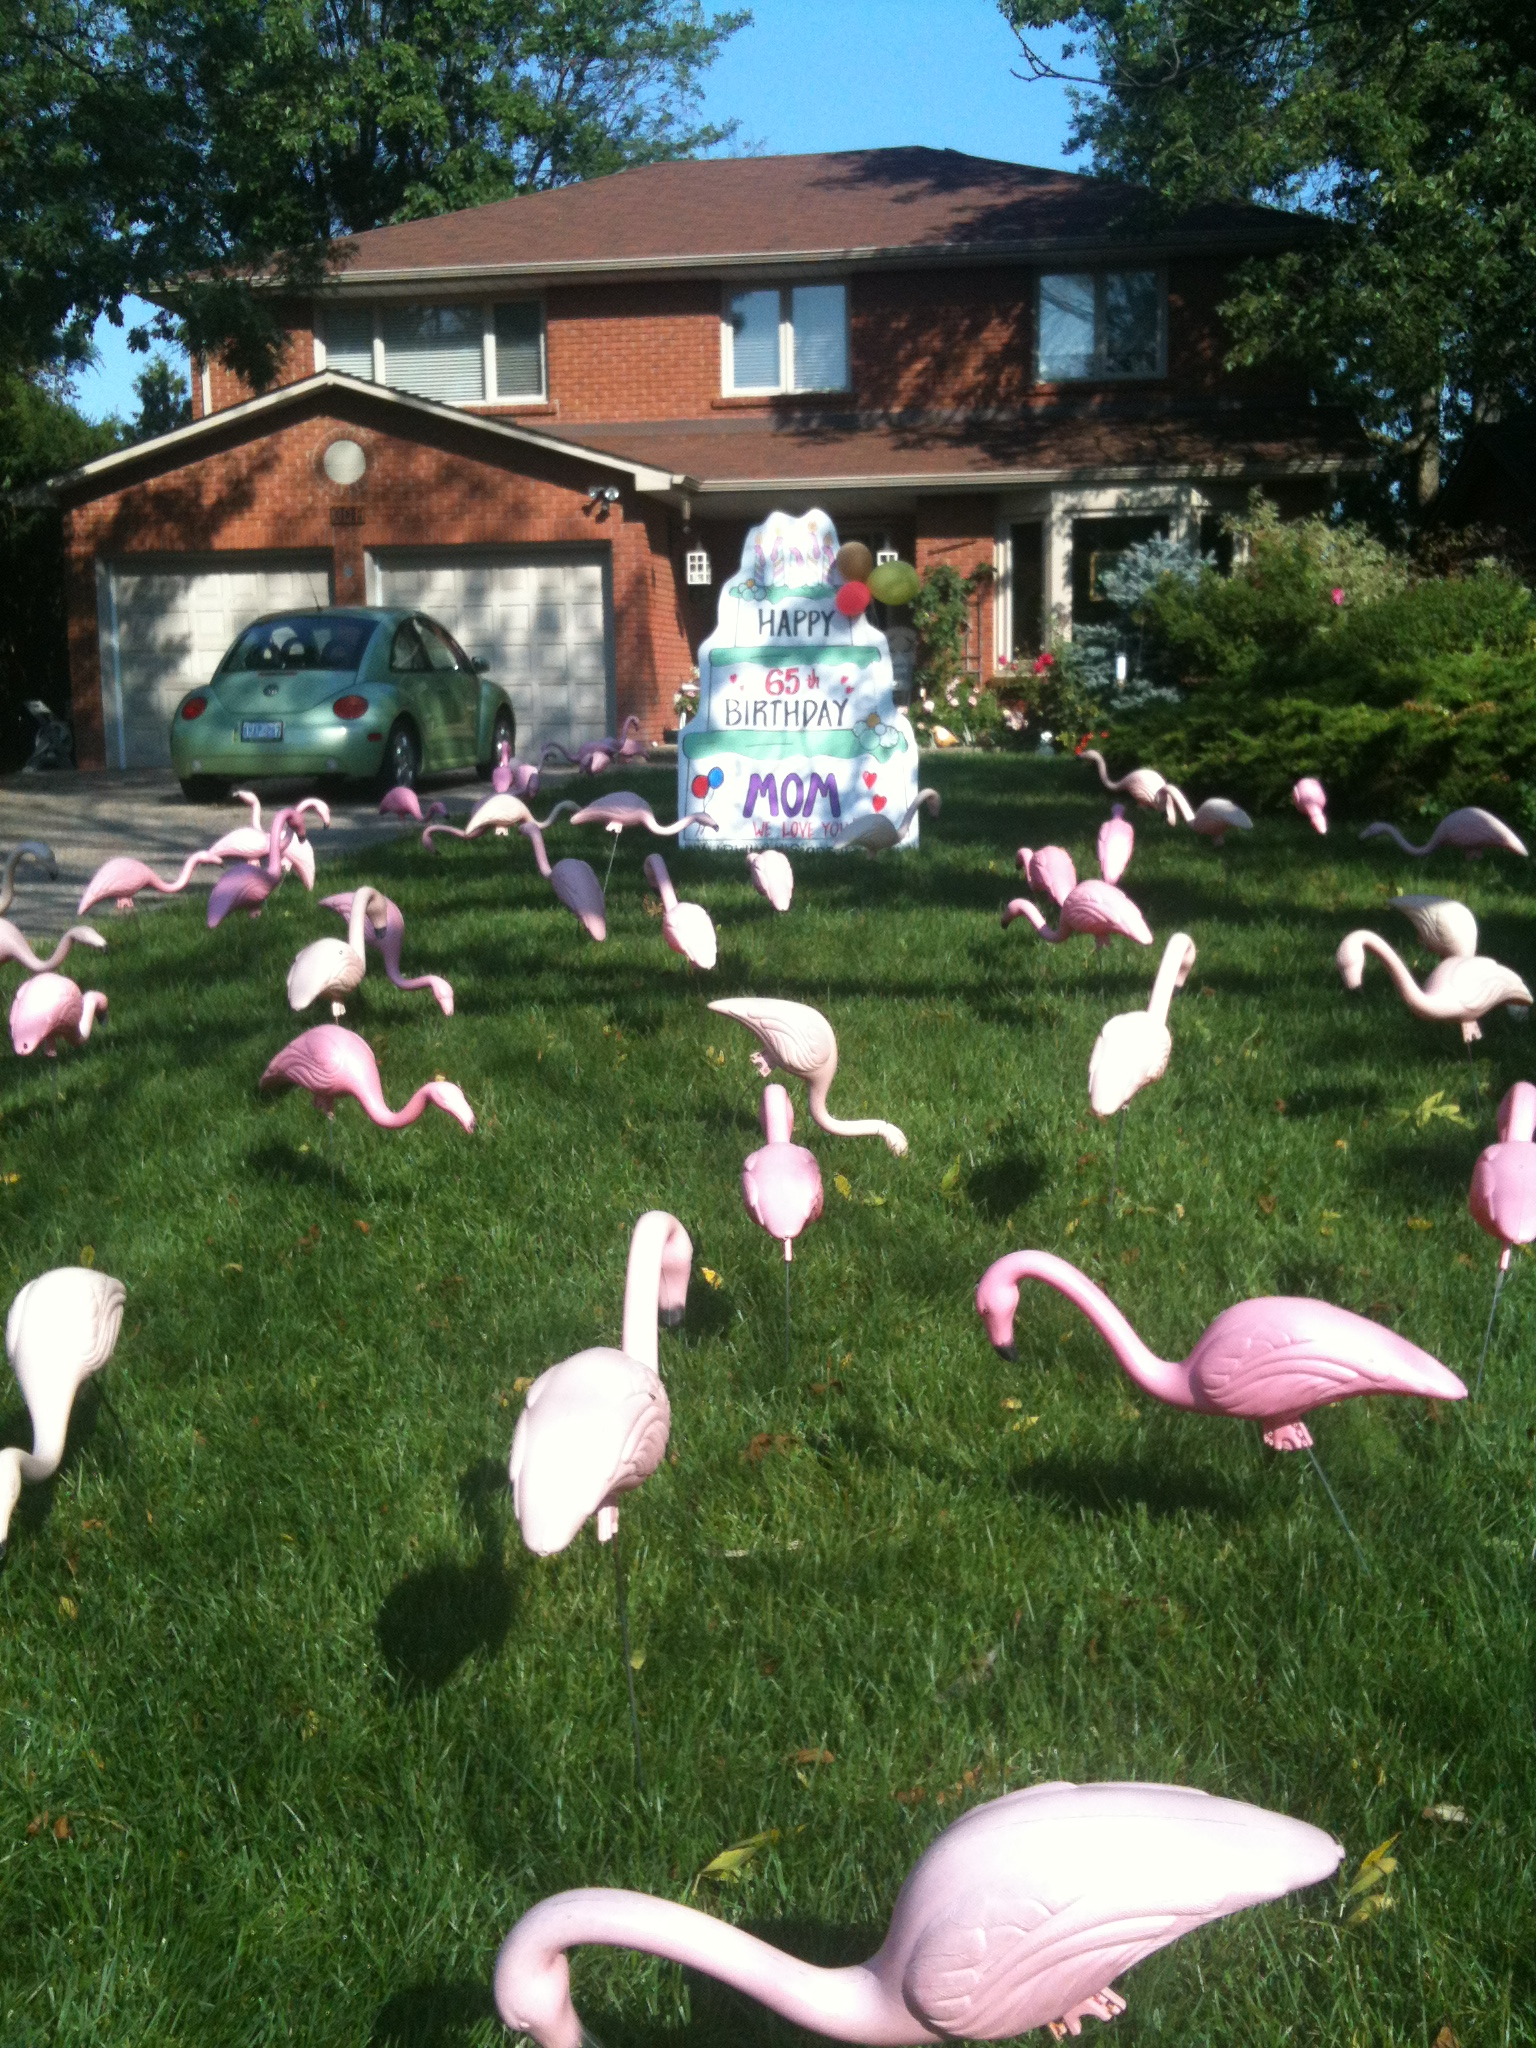 Dinosaur Lawn Decorations Lawn Greetings